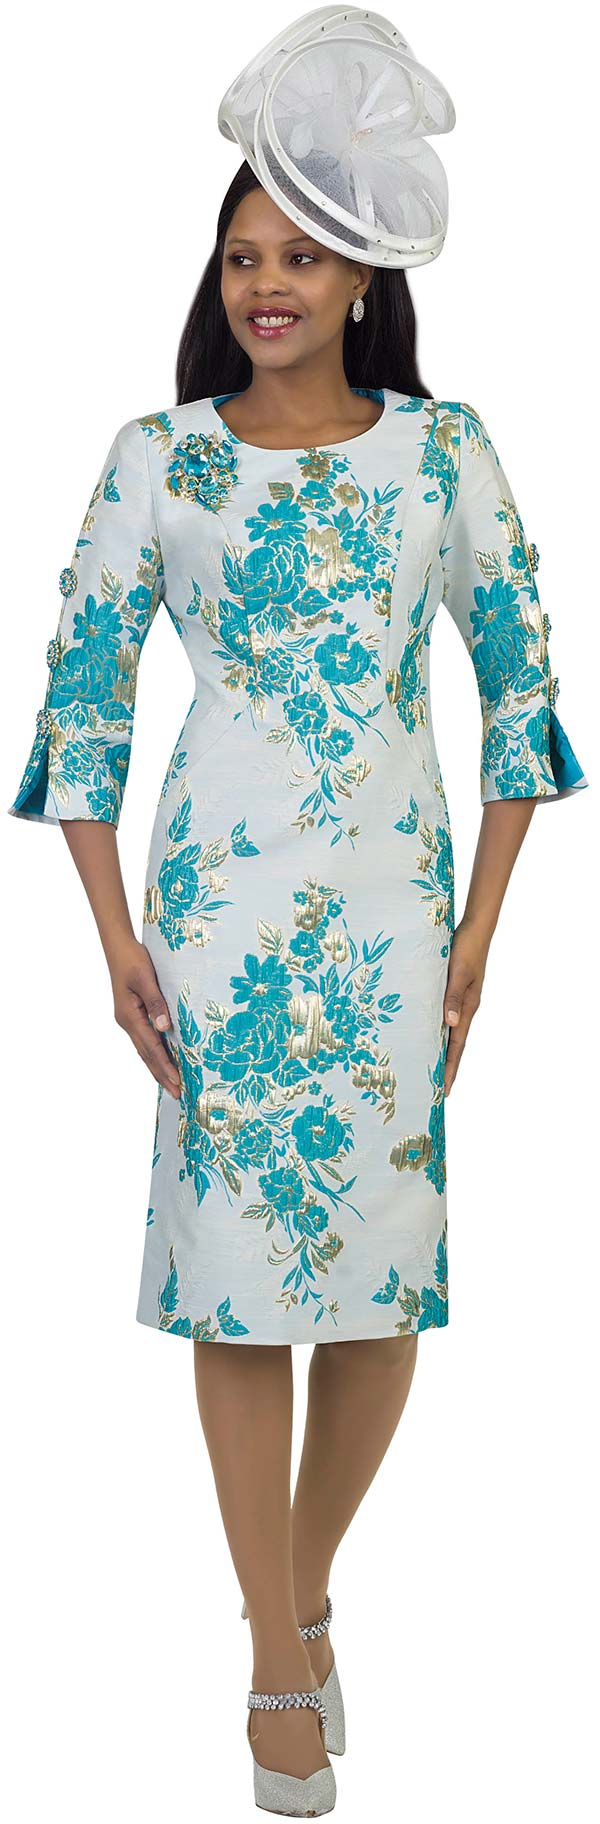 Lily and Taylor 4469-Turquoise - Novelty Floral Brocade Fabric Sheath Dress With Split & Buttoned Sleeves